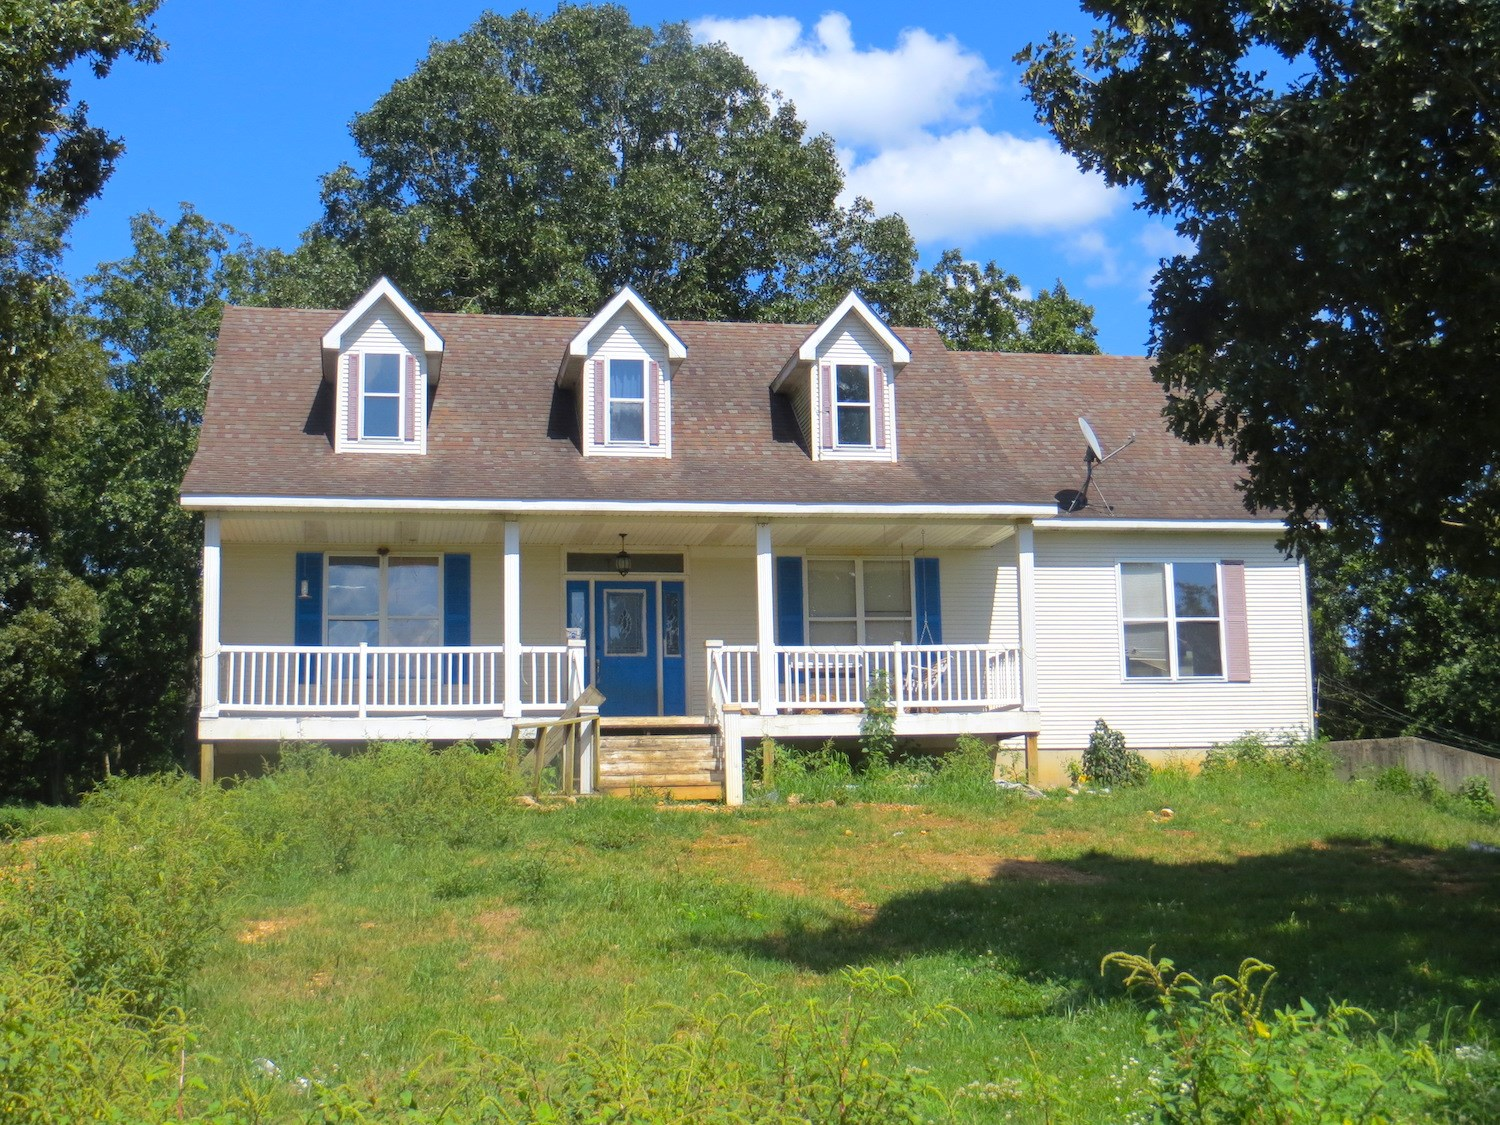 Country Home and Farm for Sale in Doniphan, MO